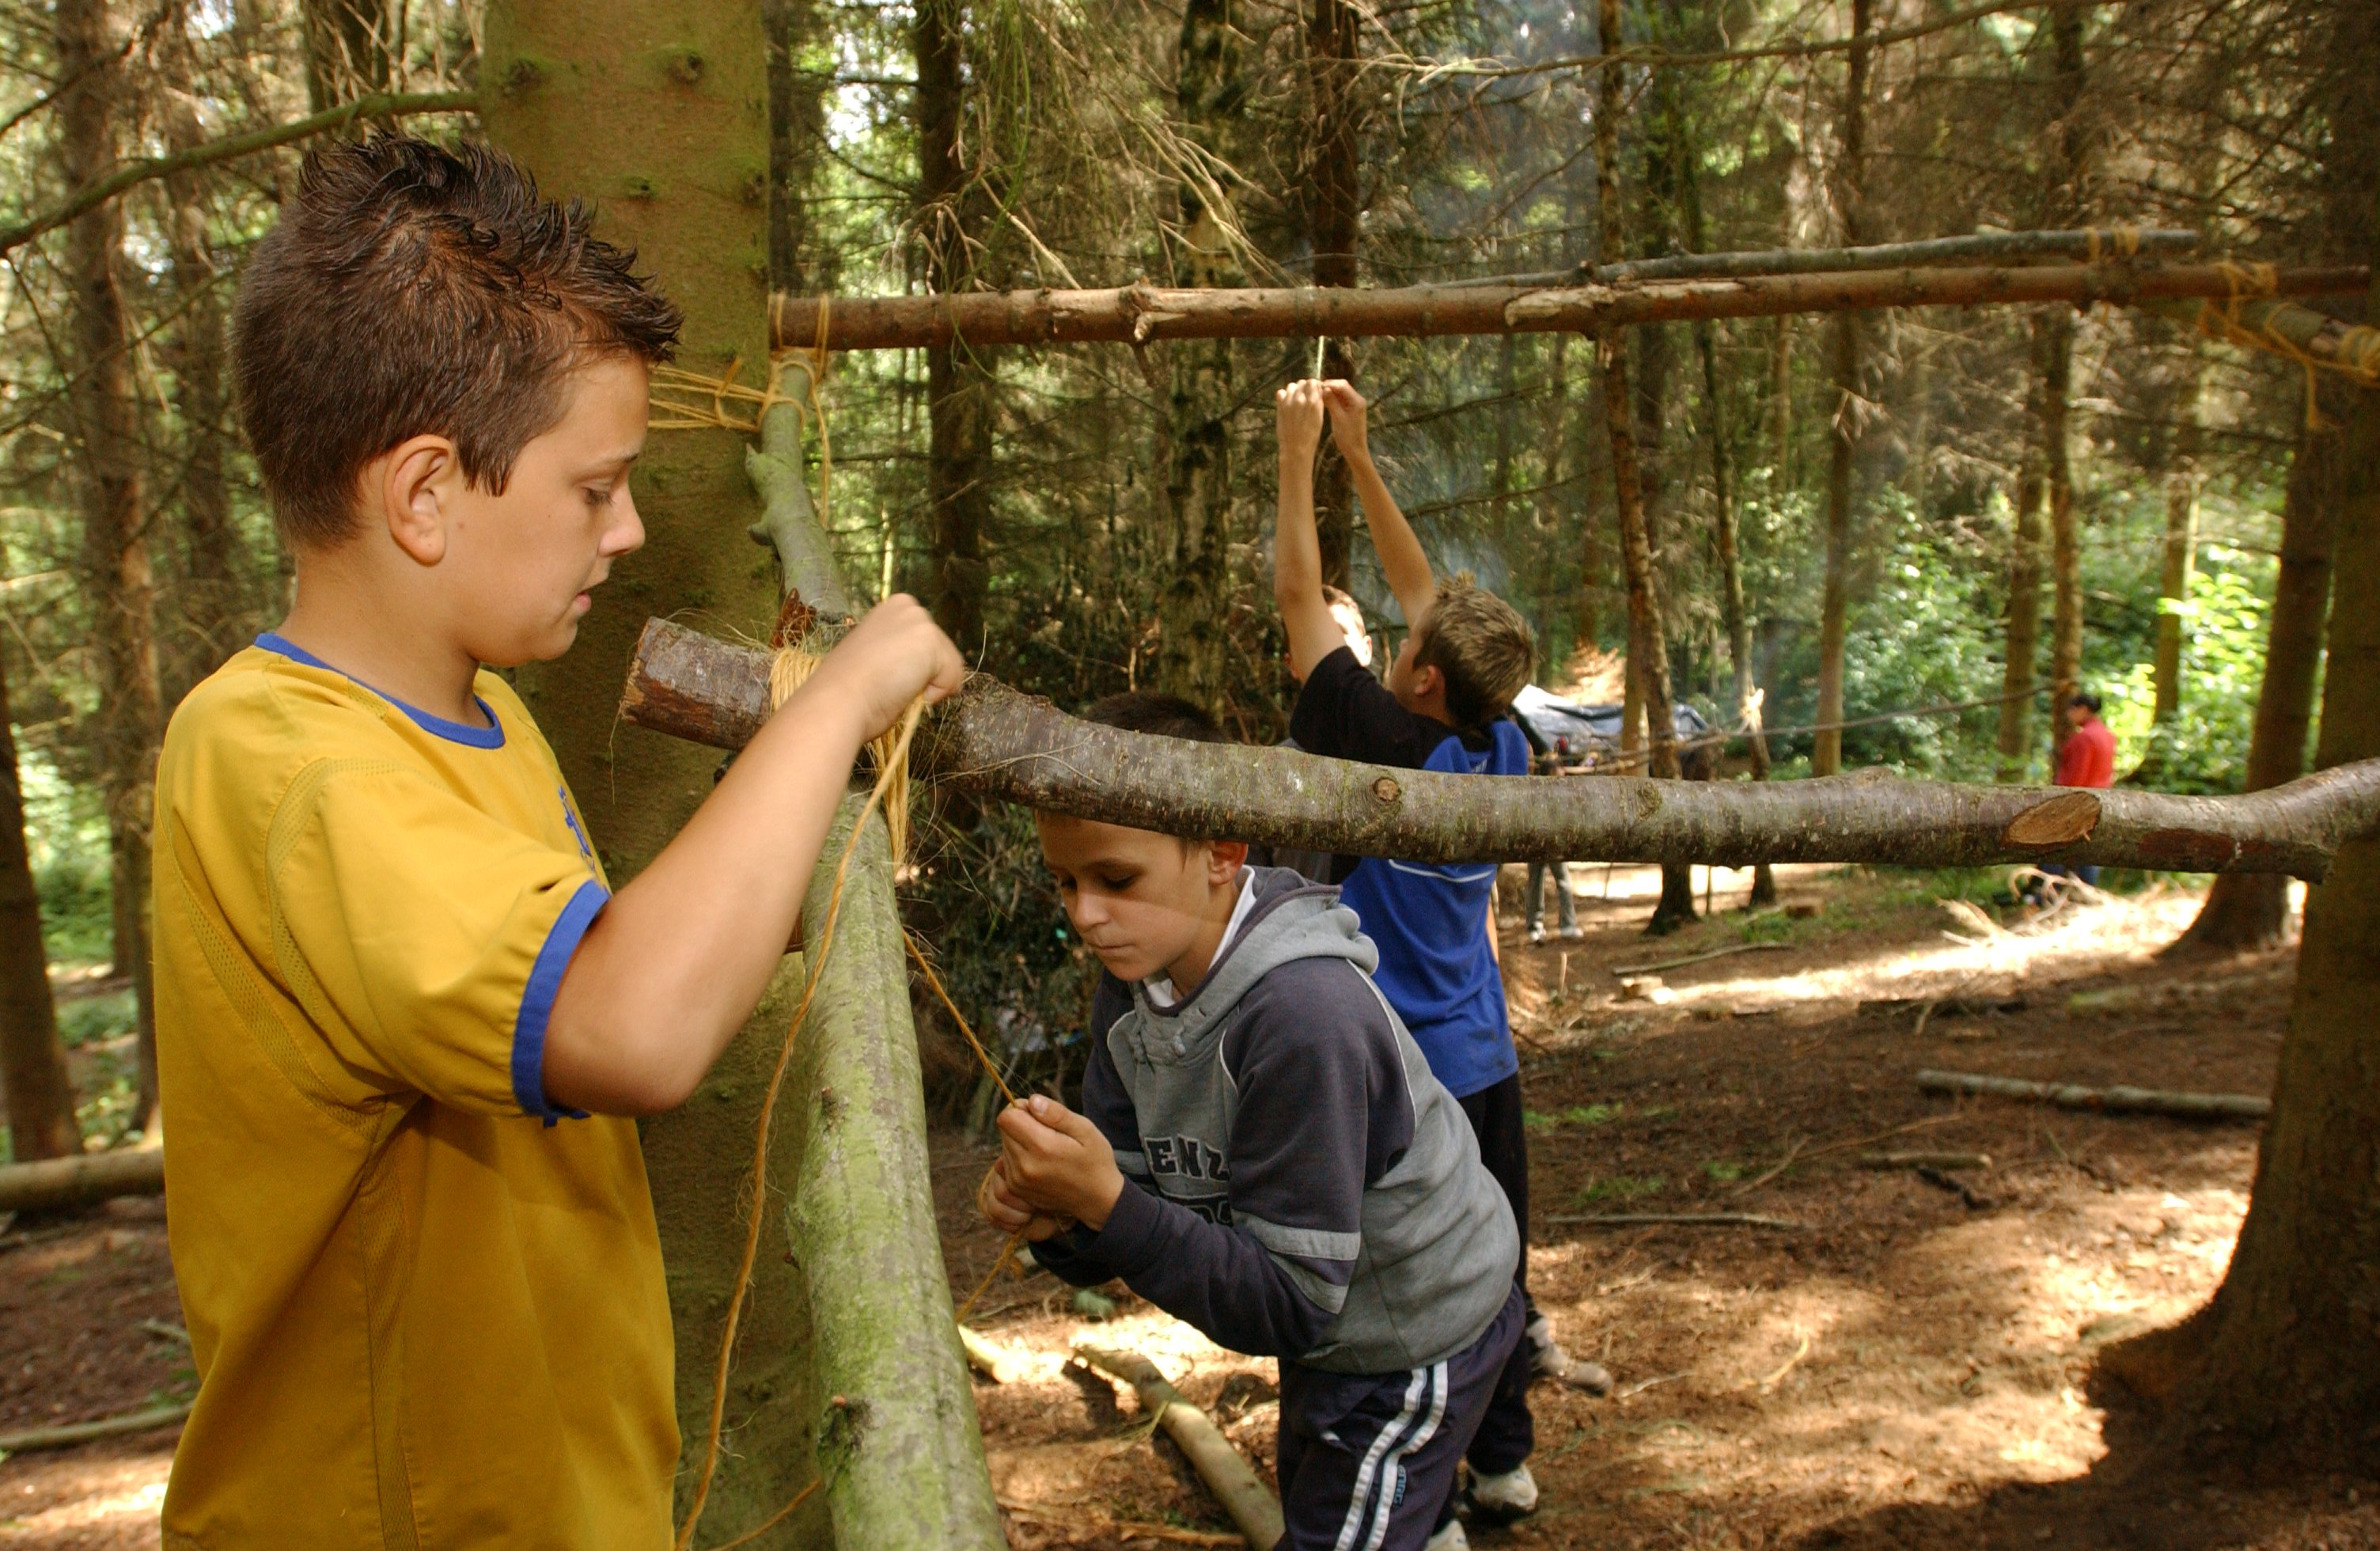 Children enjoying the woodlands